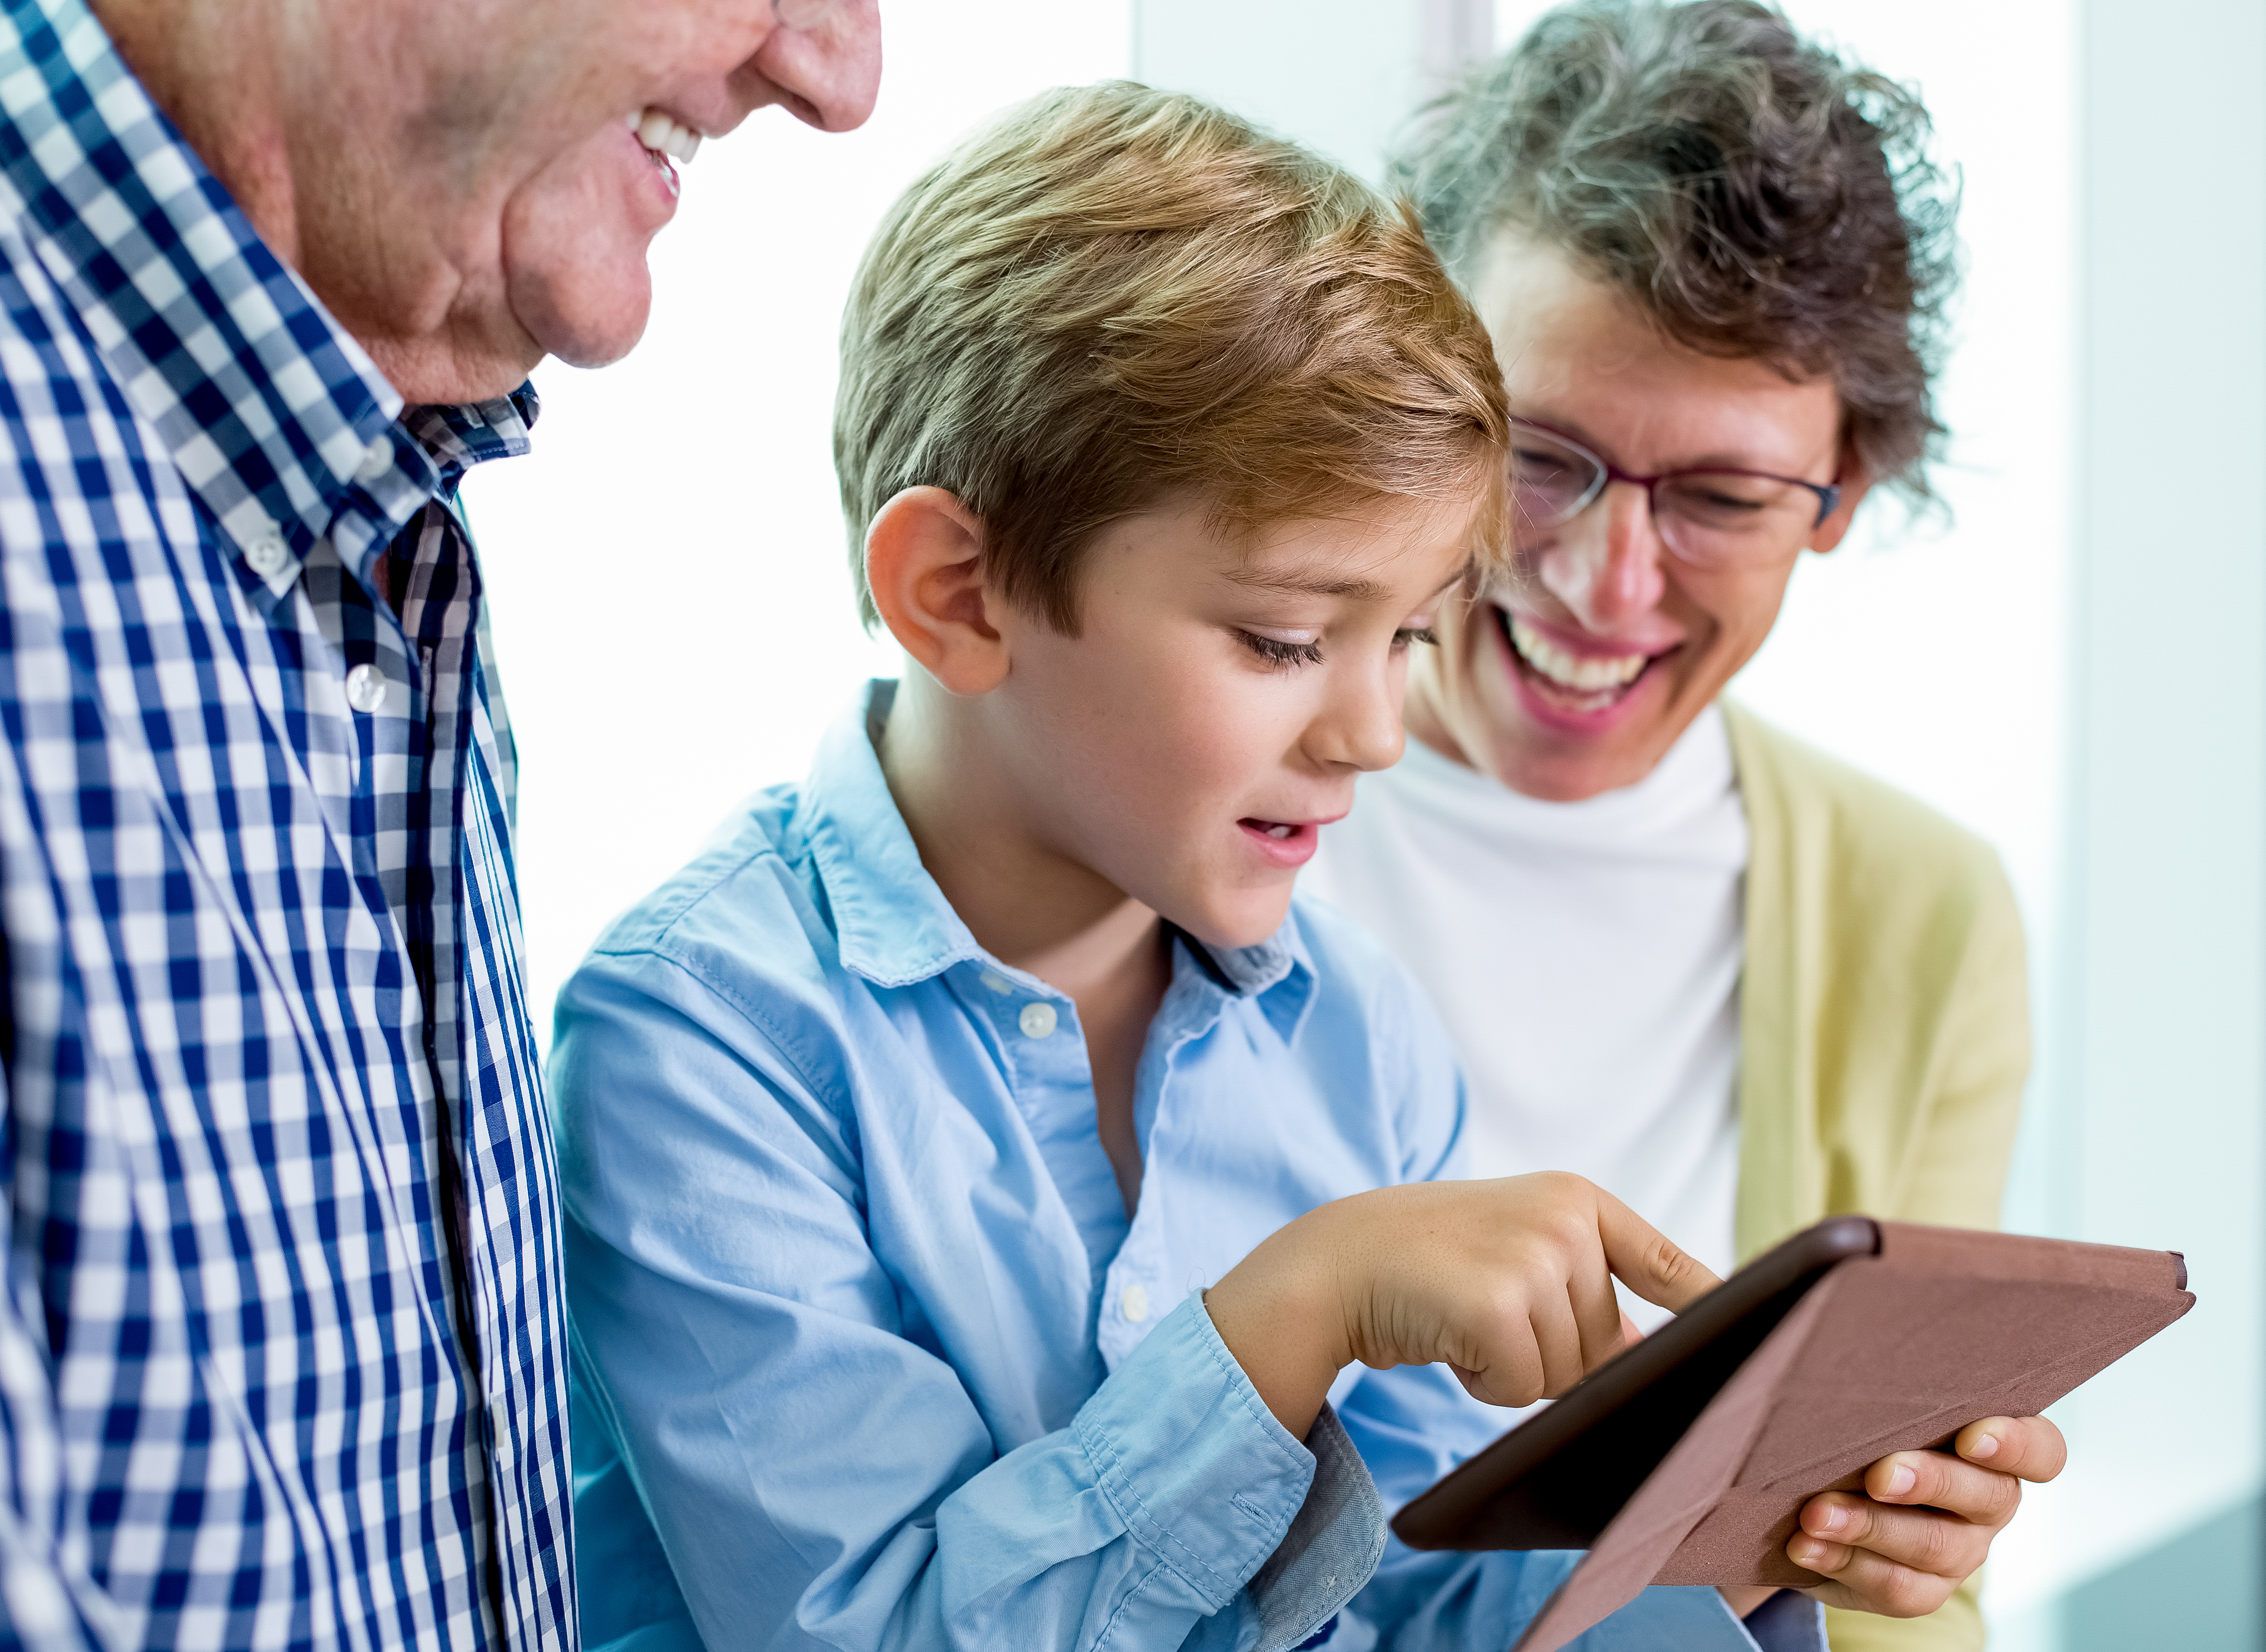 Modern child using tablet and asking grandparents. Cute boy surfing the net or looking through photos on device. Technology in life concept